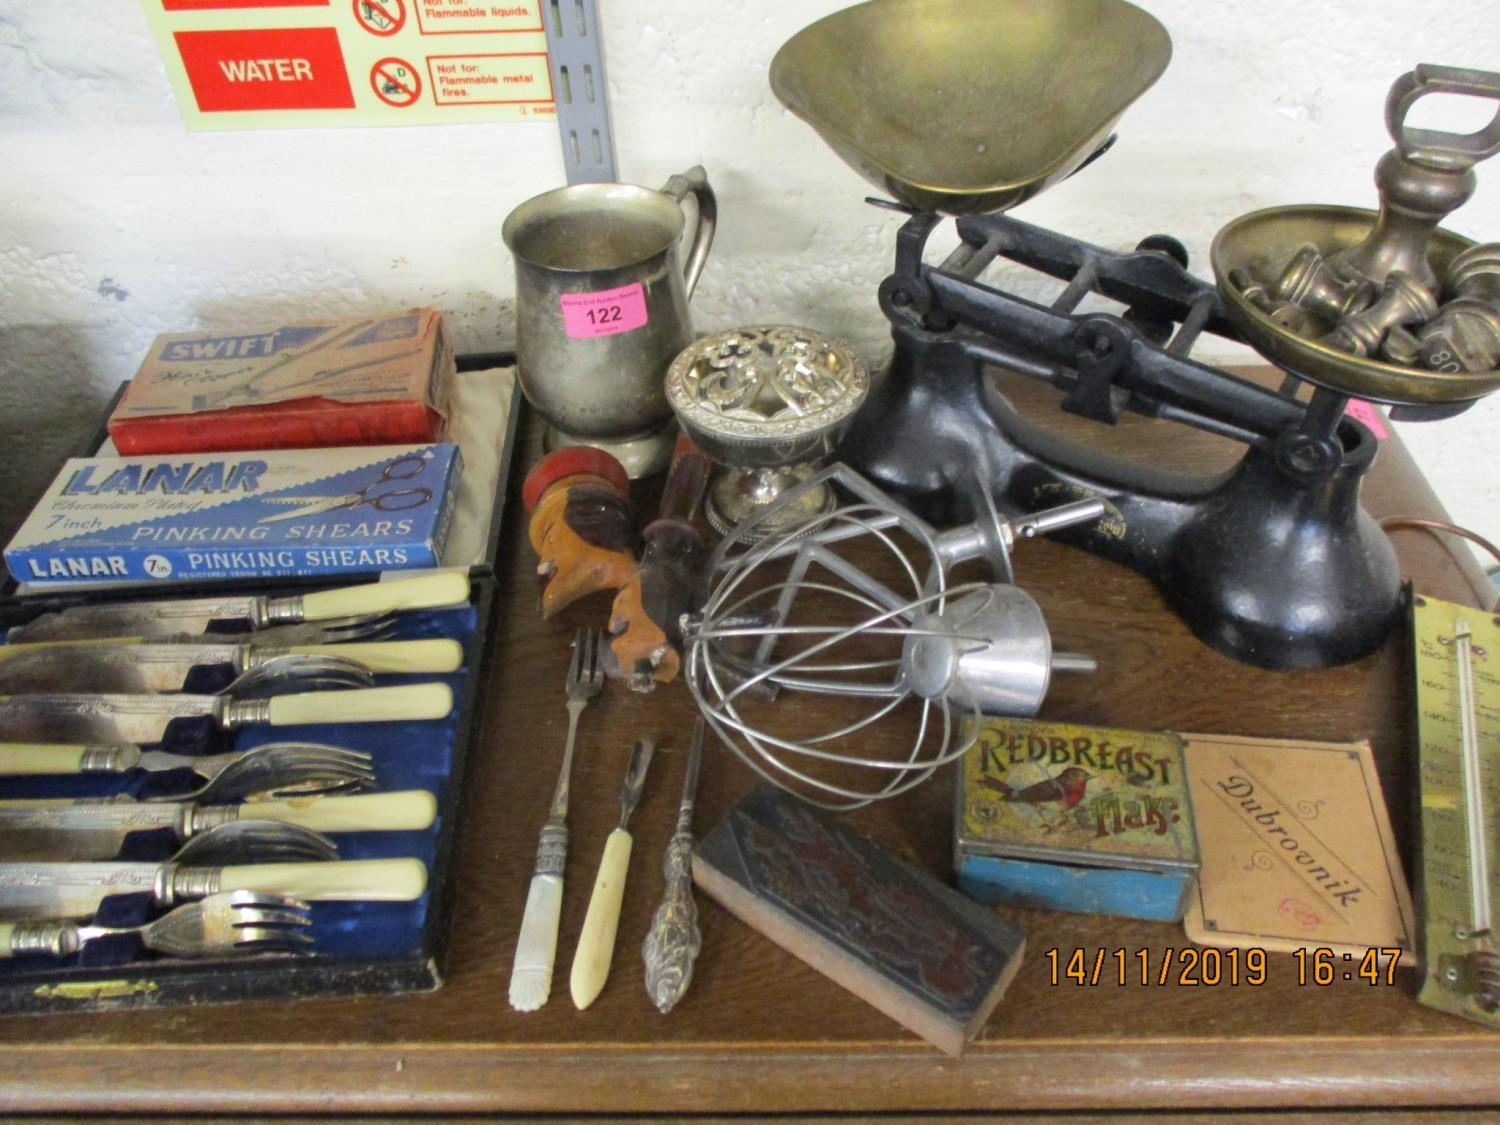 Lot 122 - Metalware to include a Victorian copper kettle, scales, Kitchenalia, a mahogany letter rack and